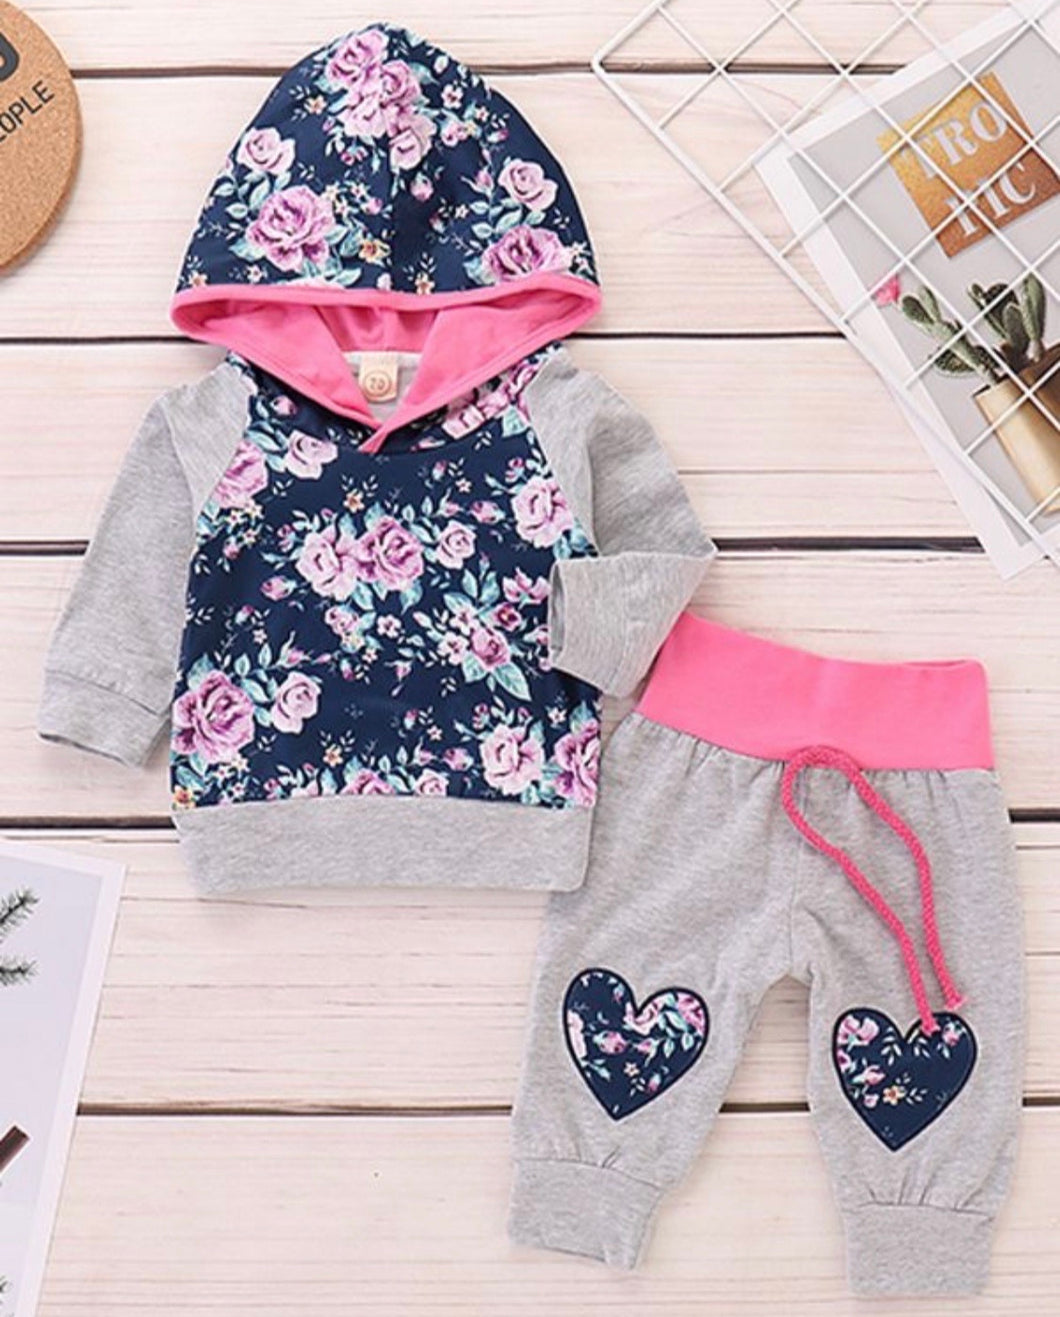 Girls tracksuit - pink, grey and floral